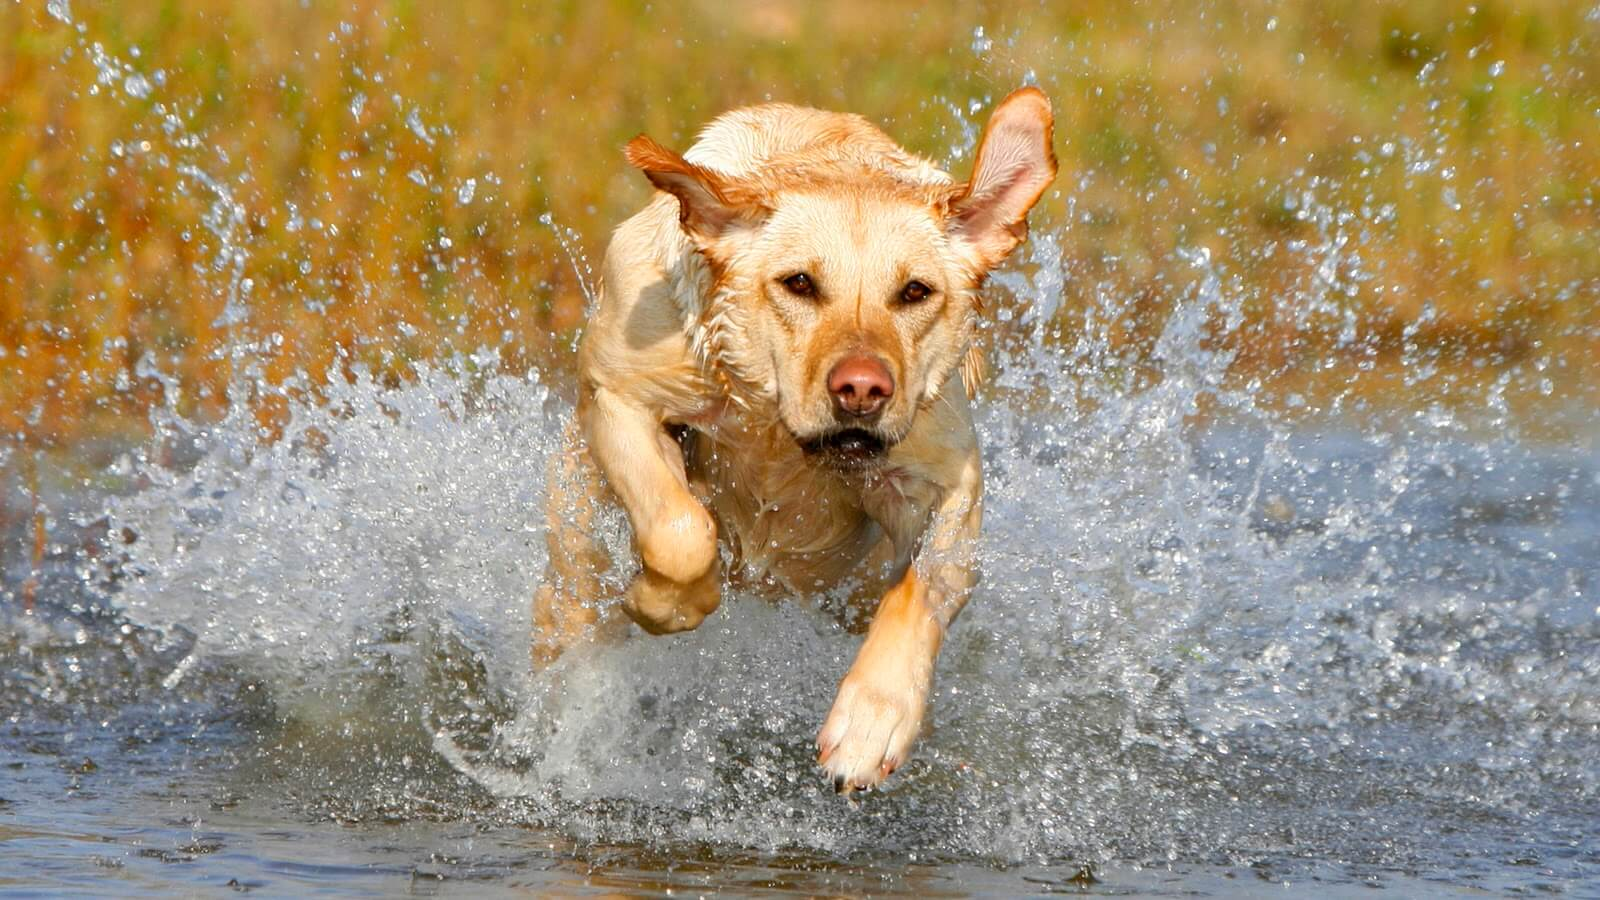 Leptospirosis On The Rise In Dogs